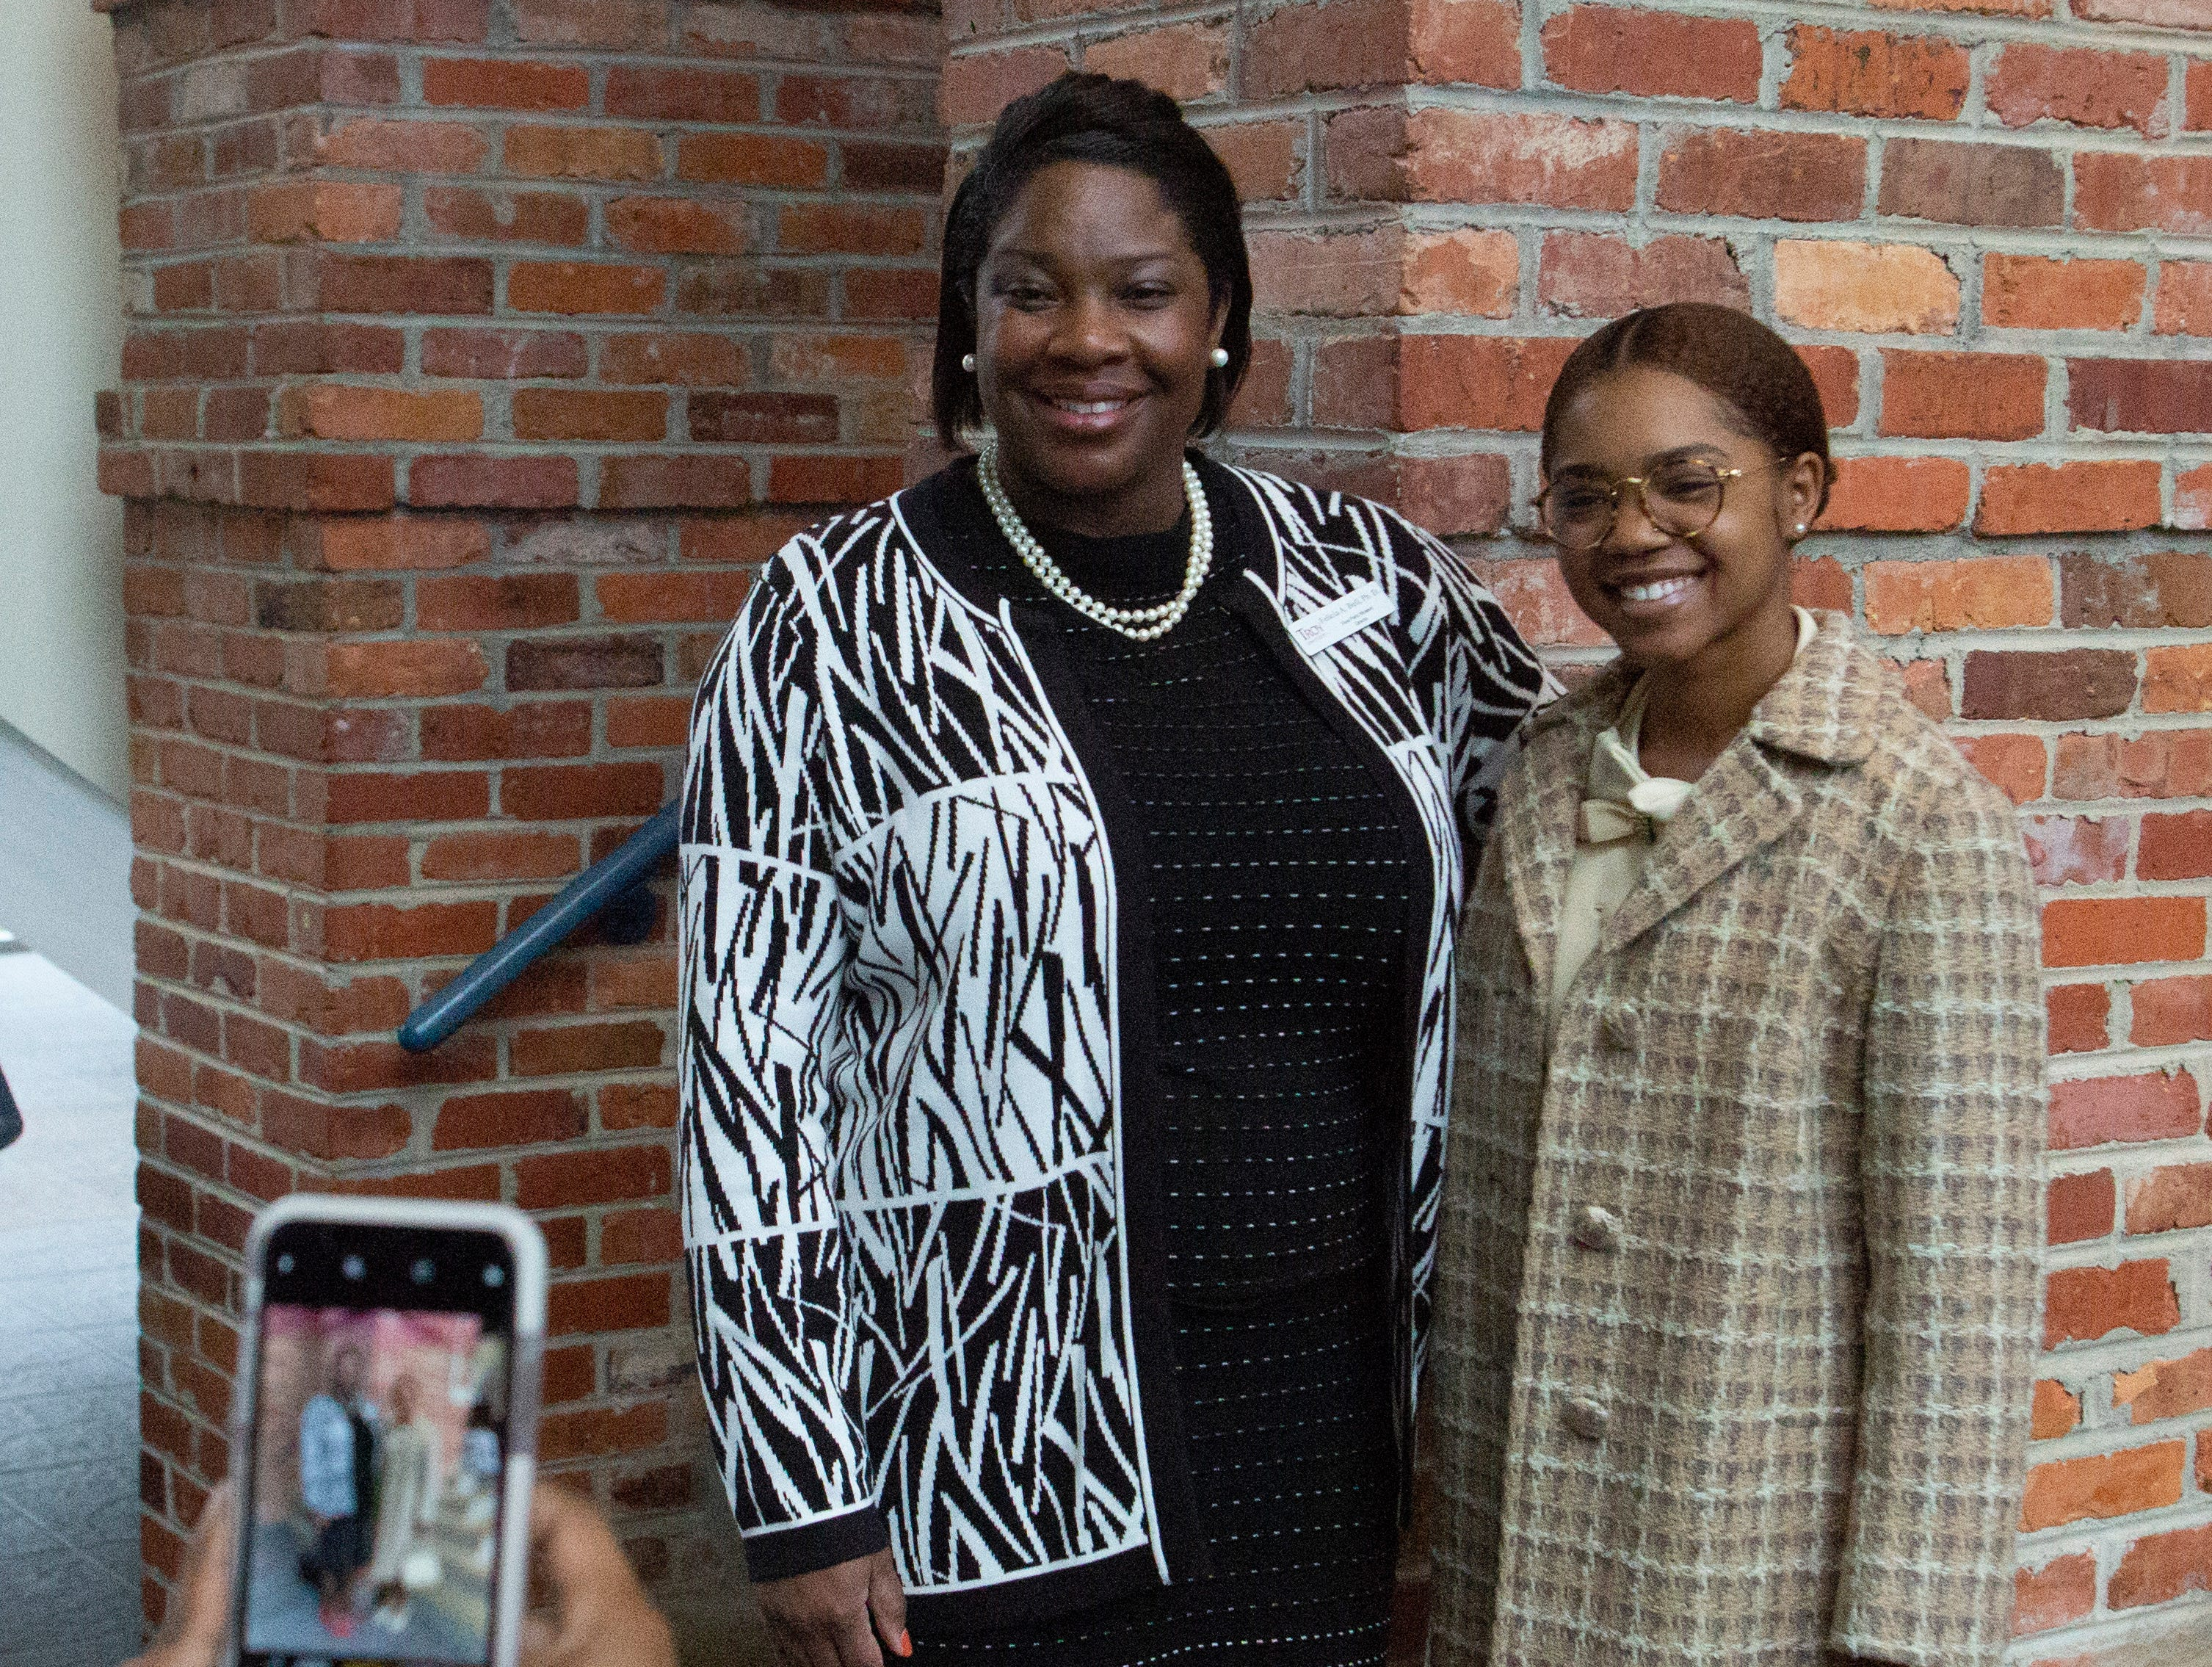 Felicia Bell poses for a photo with Kortney Coleman following a Rosa Parks Day event.